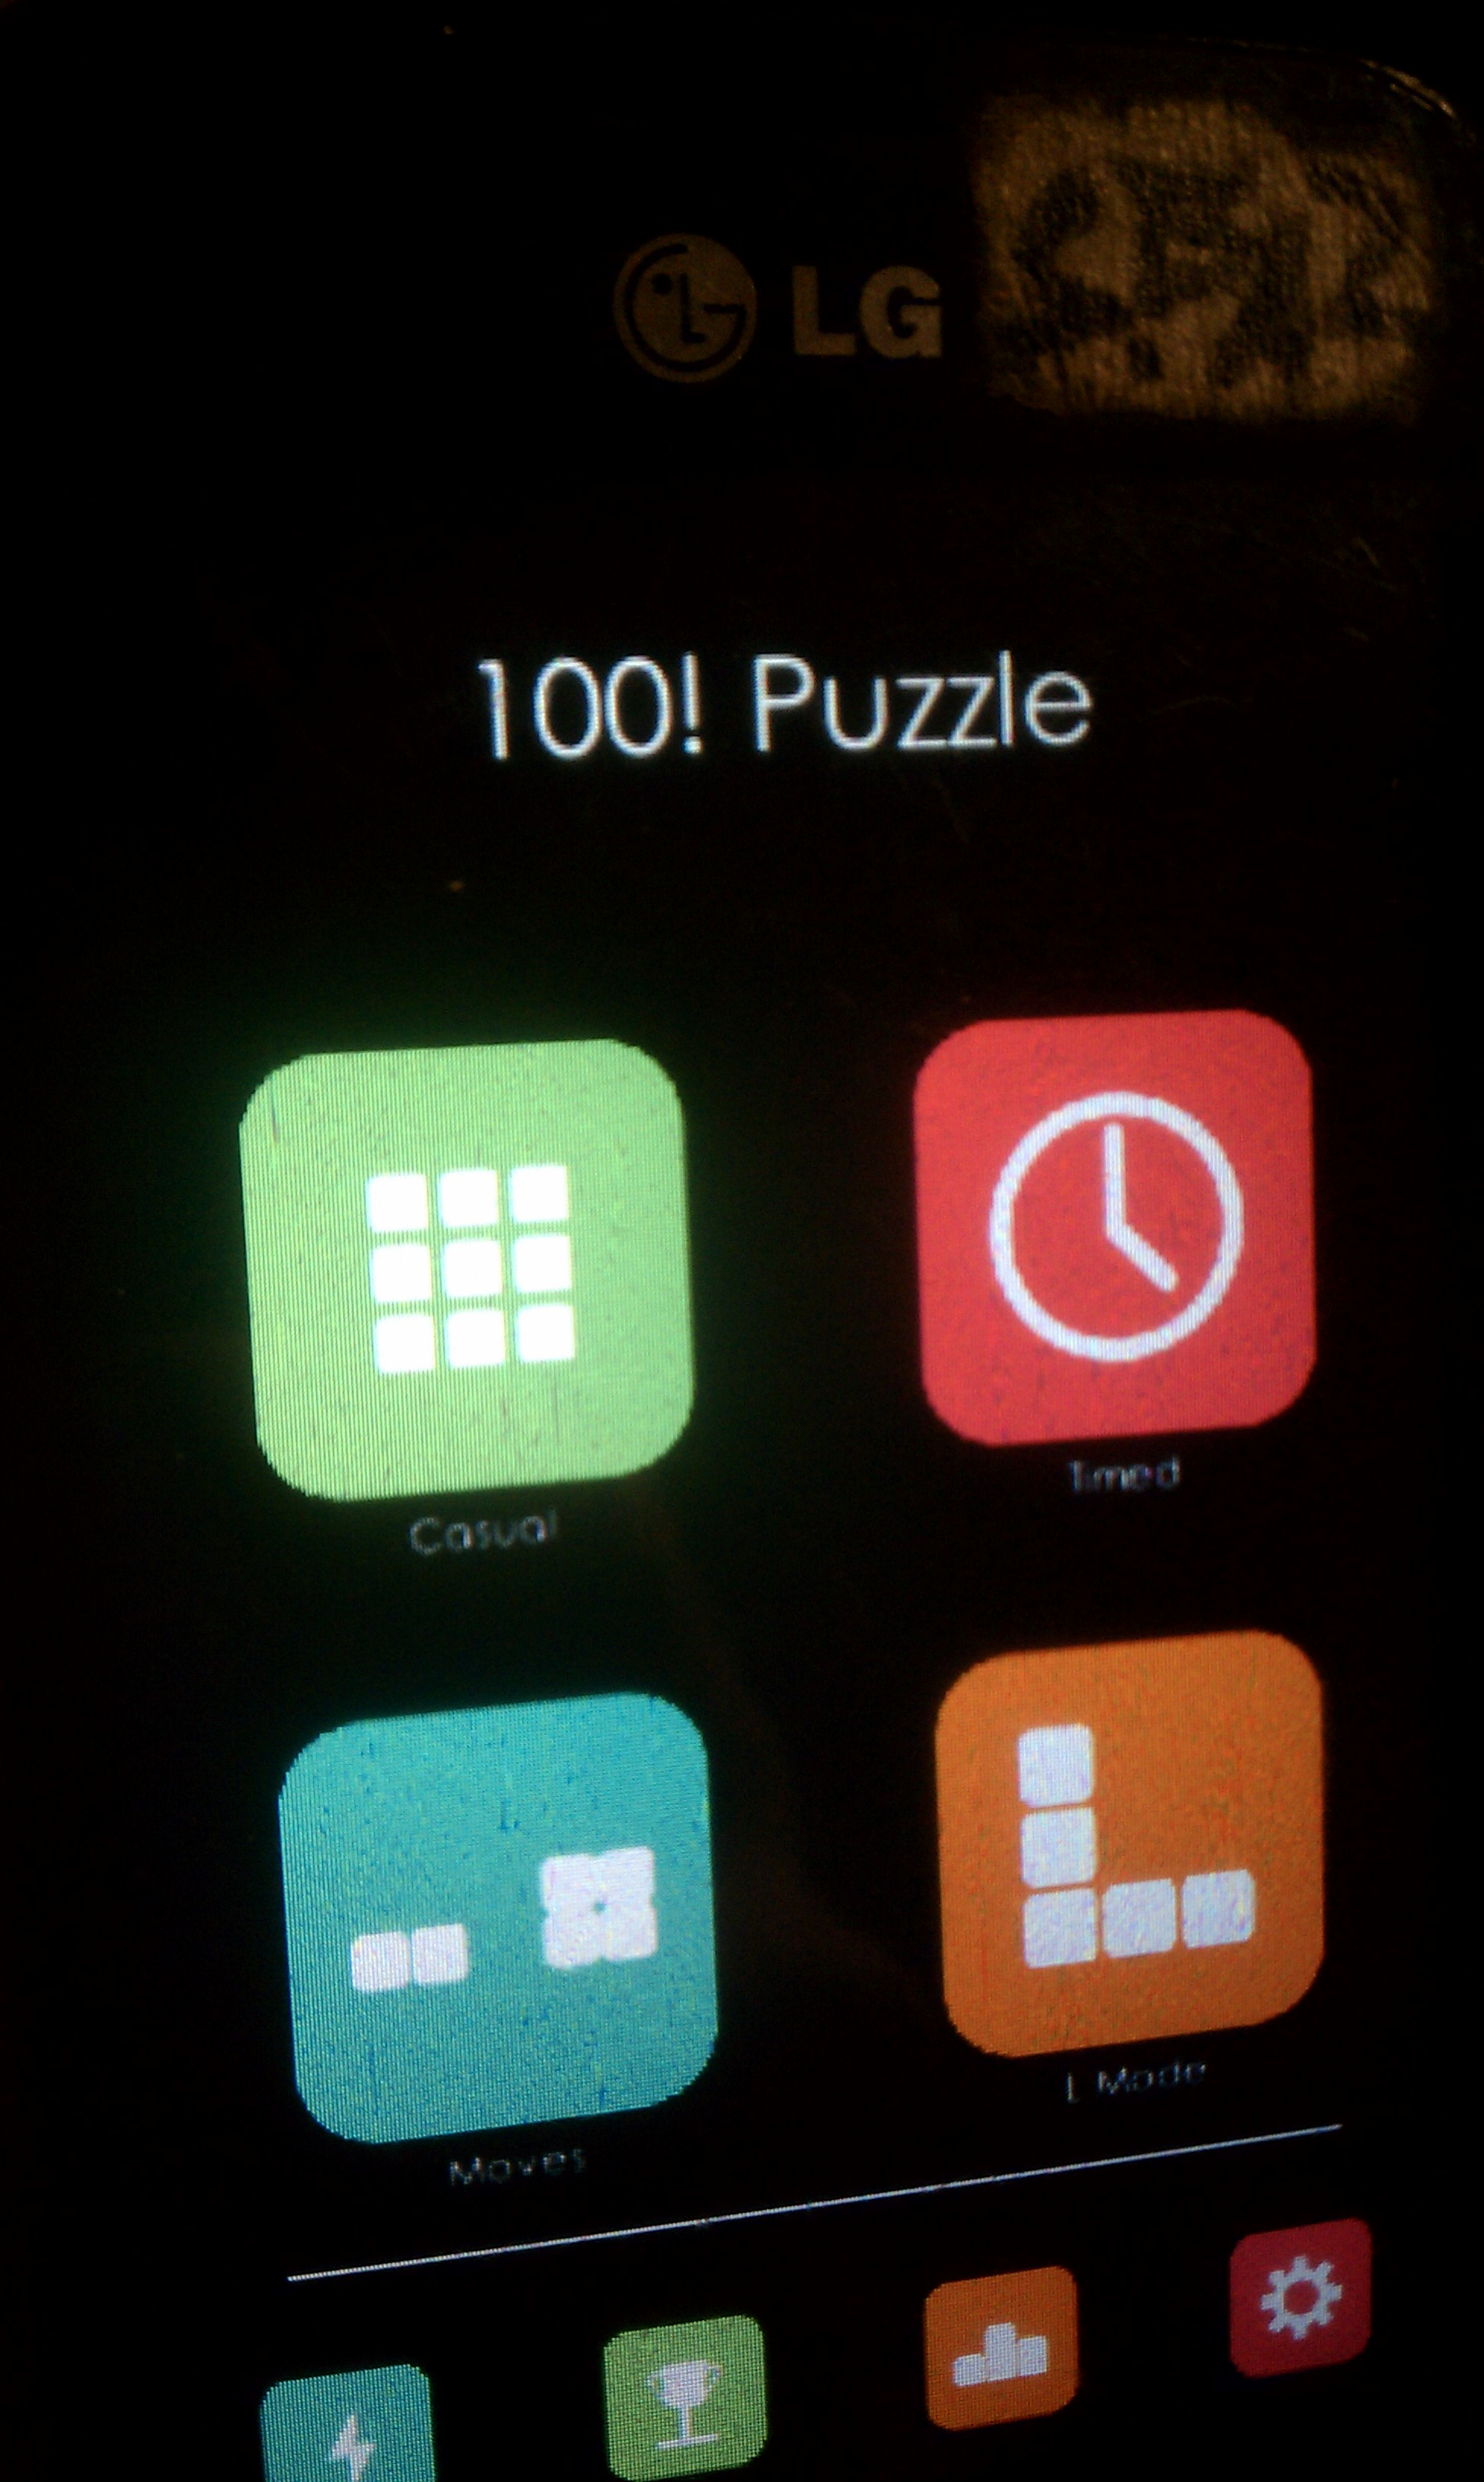 S.BAZ: 100! Puzzle [Casual] (Android) 3,179 points on 2019-11-18 06:56:28